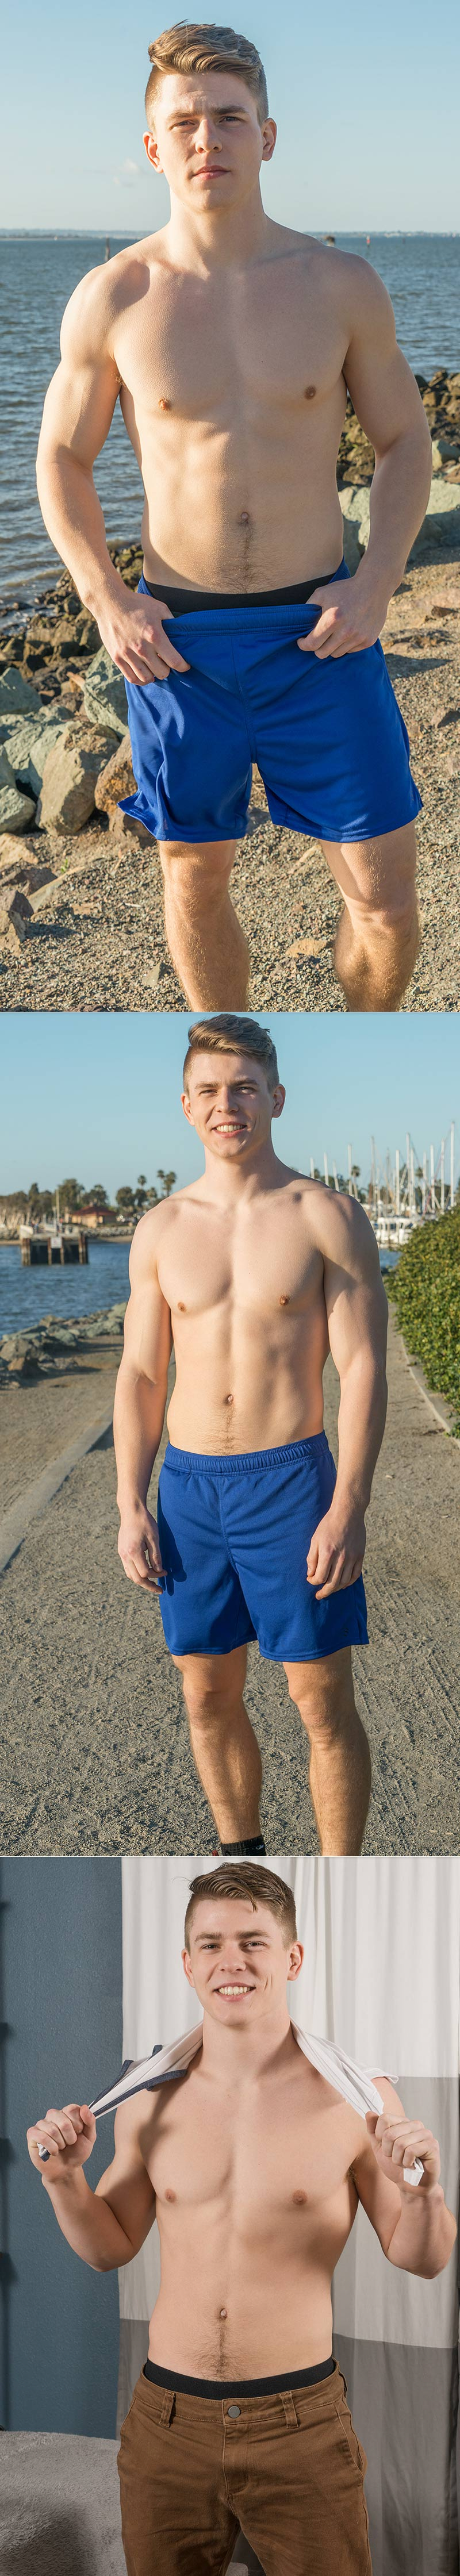 Warner at SeanCody